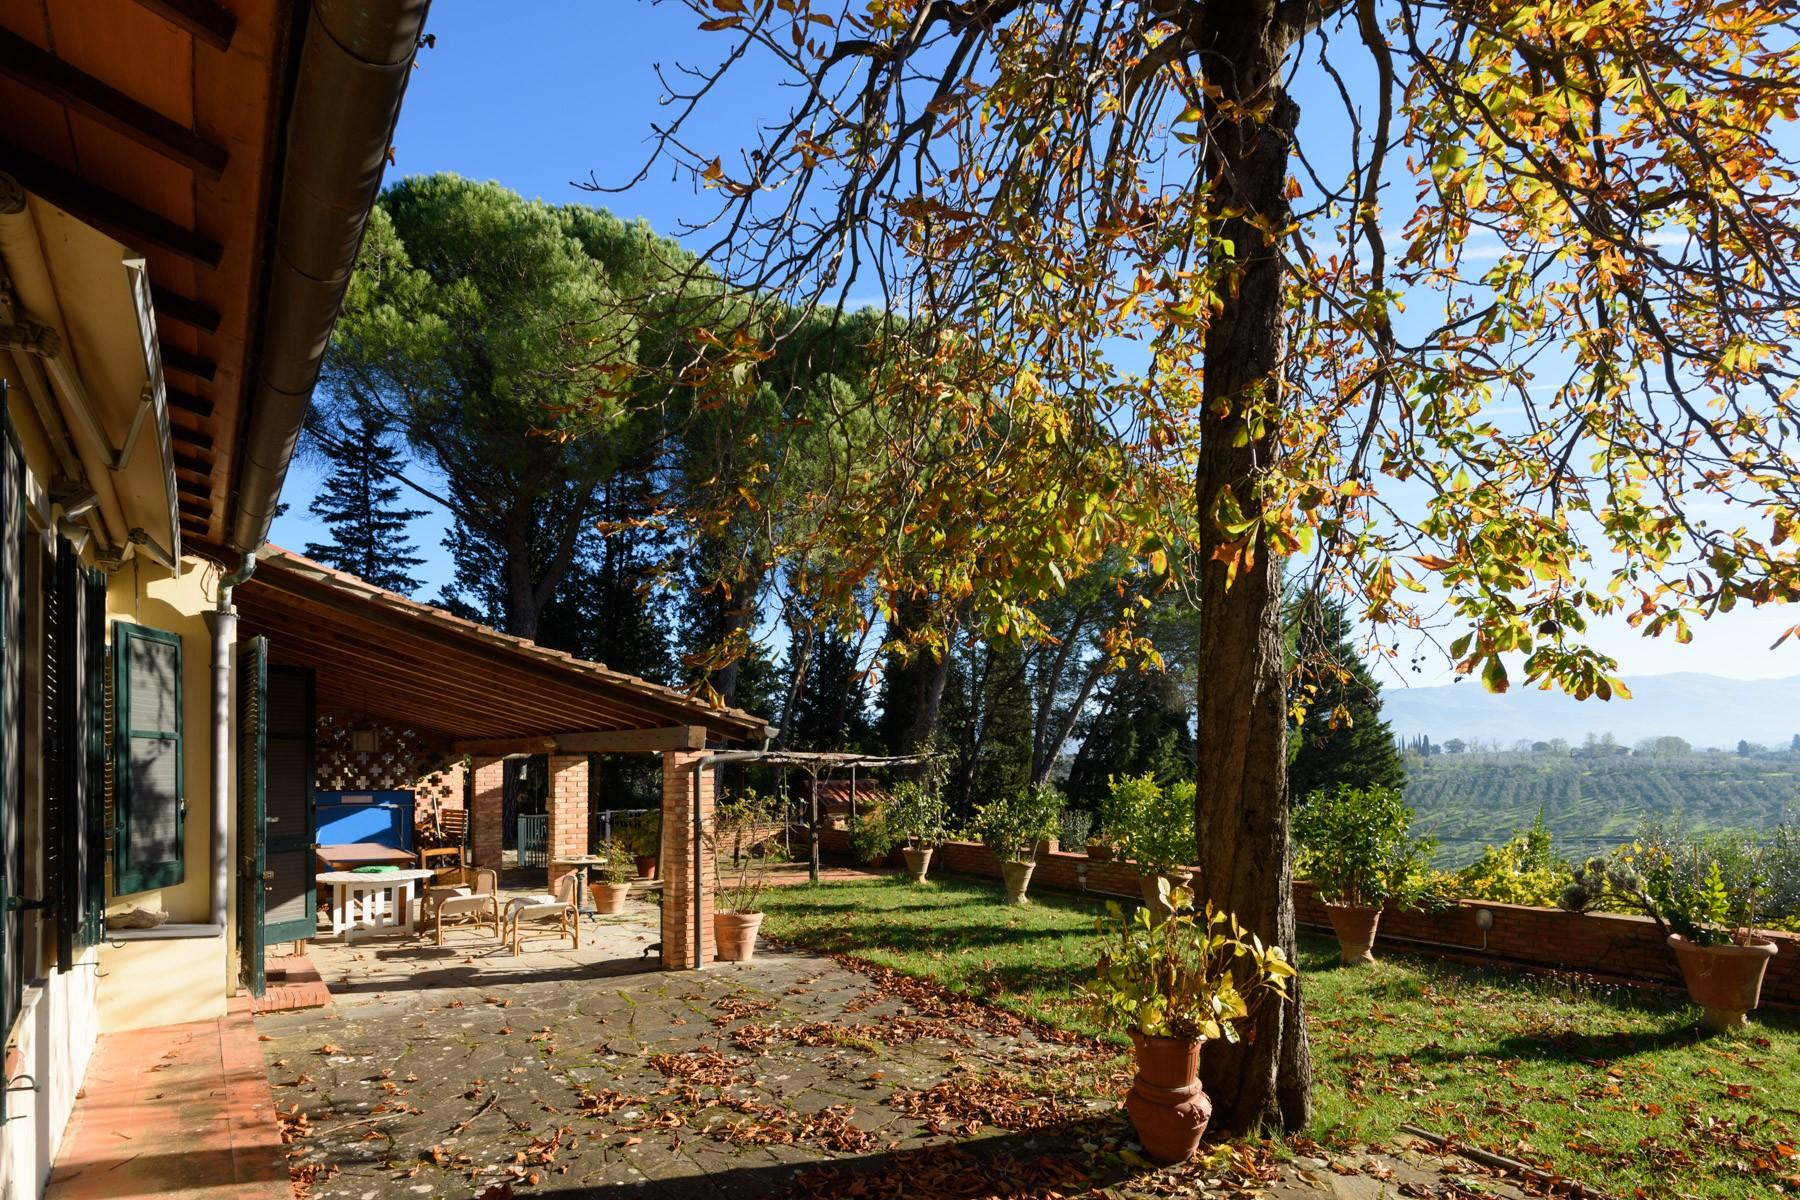 Marvelous villa in the chianti countryside - 2